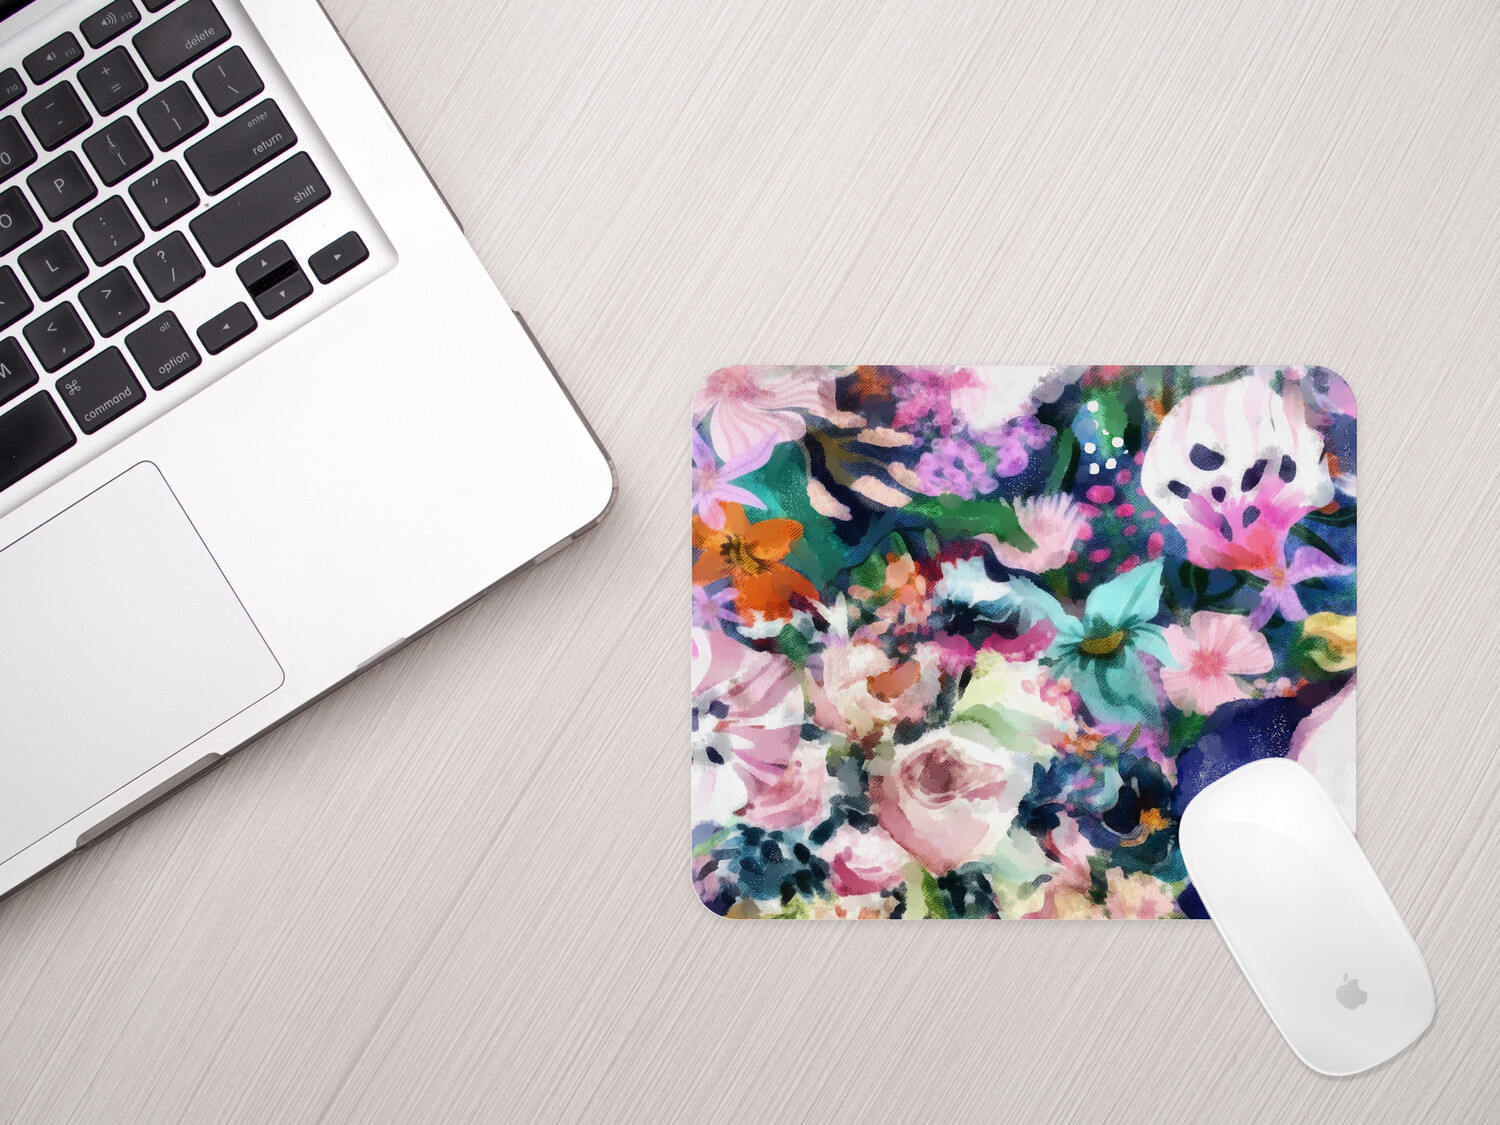 Mouse Pad (available August 10th)